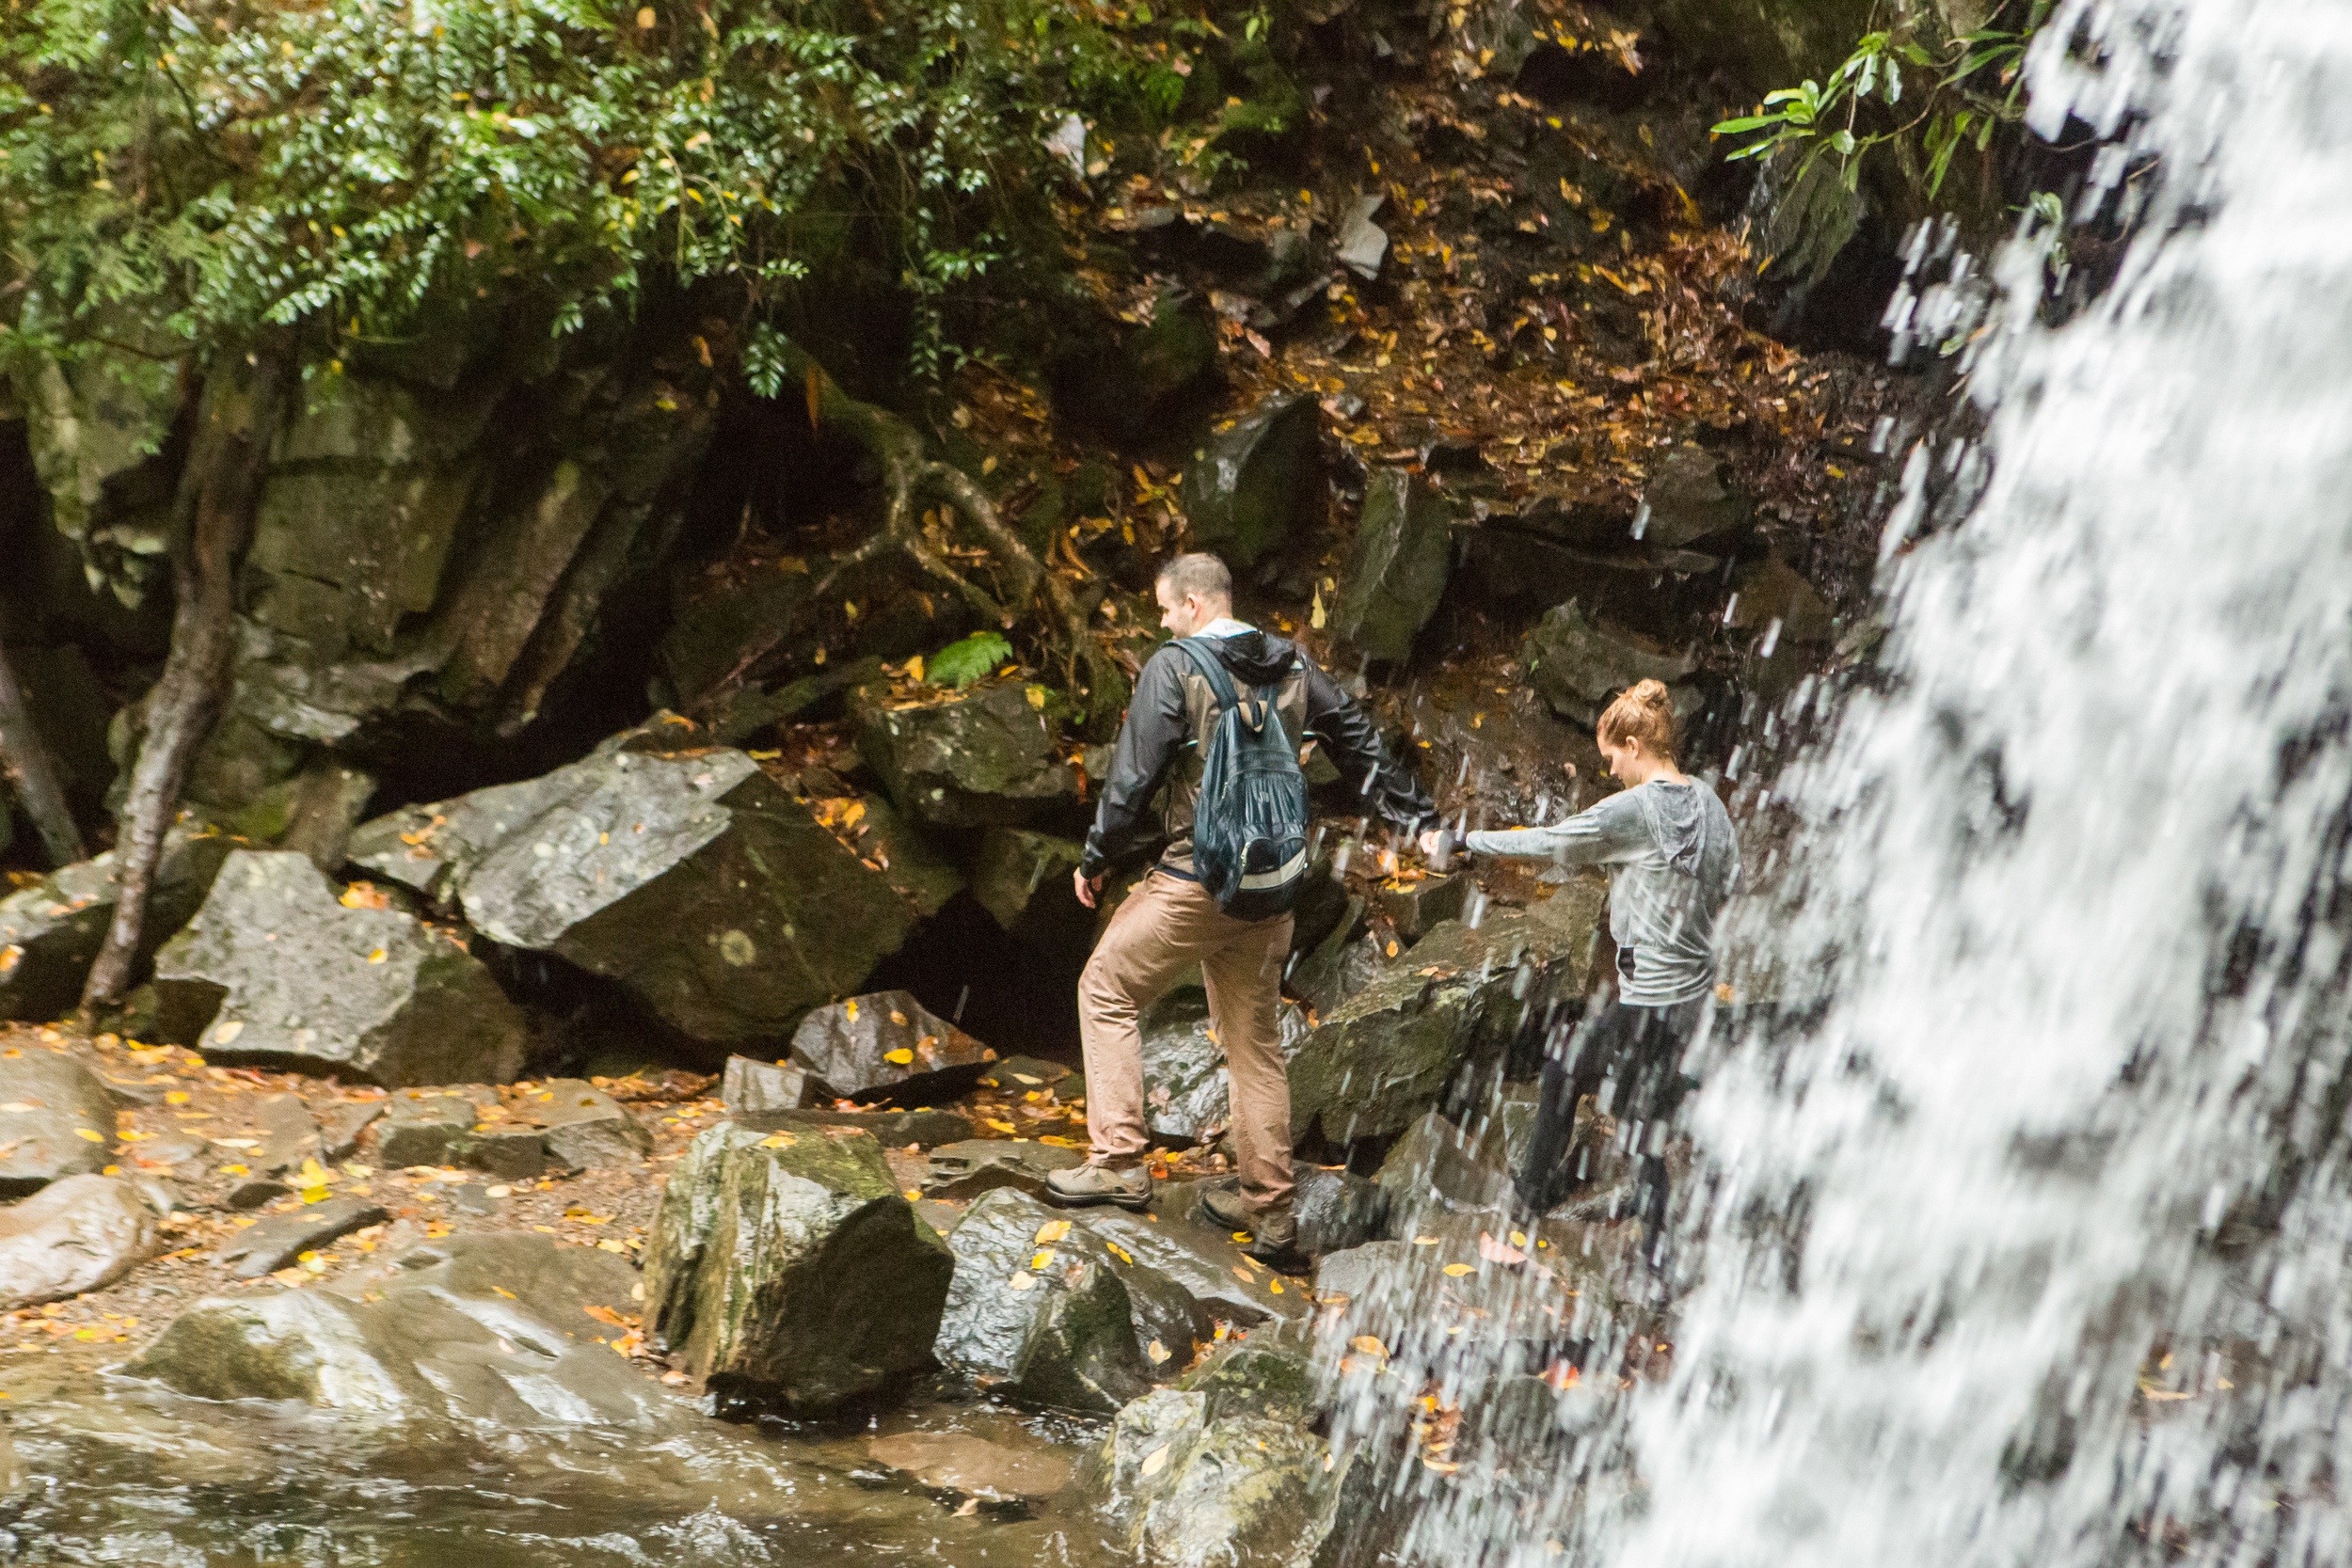 """Josh leads Jaime from behind the waterfall - this is what makes Grotto Falls a """"grotto,"""" as you can walk through a small grotto behind the water."""